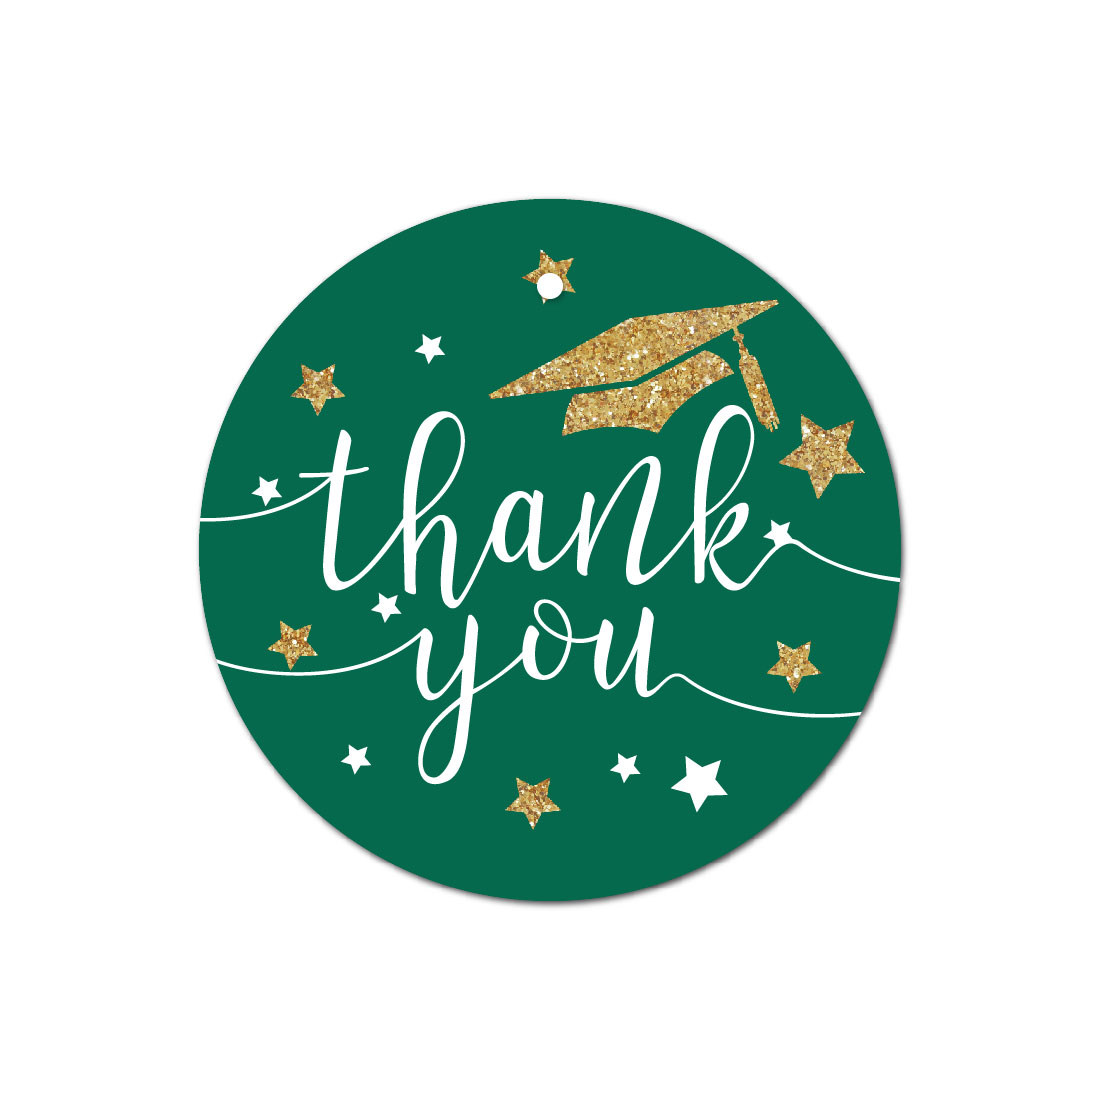 Emerald Forest Green and Gold Glittering Graduation Party, Round Circle Gift Tags, Thank You!, 24-Pack